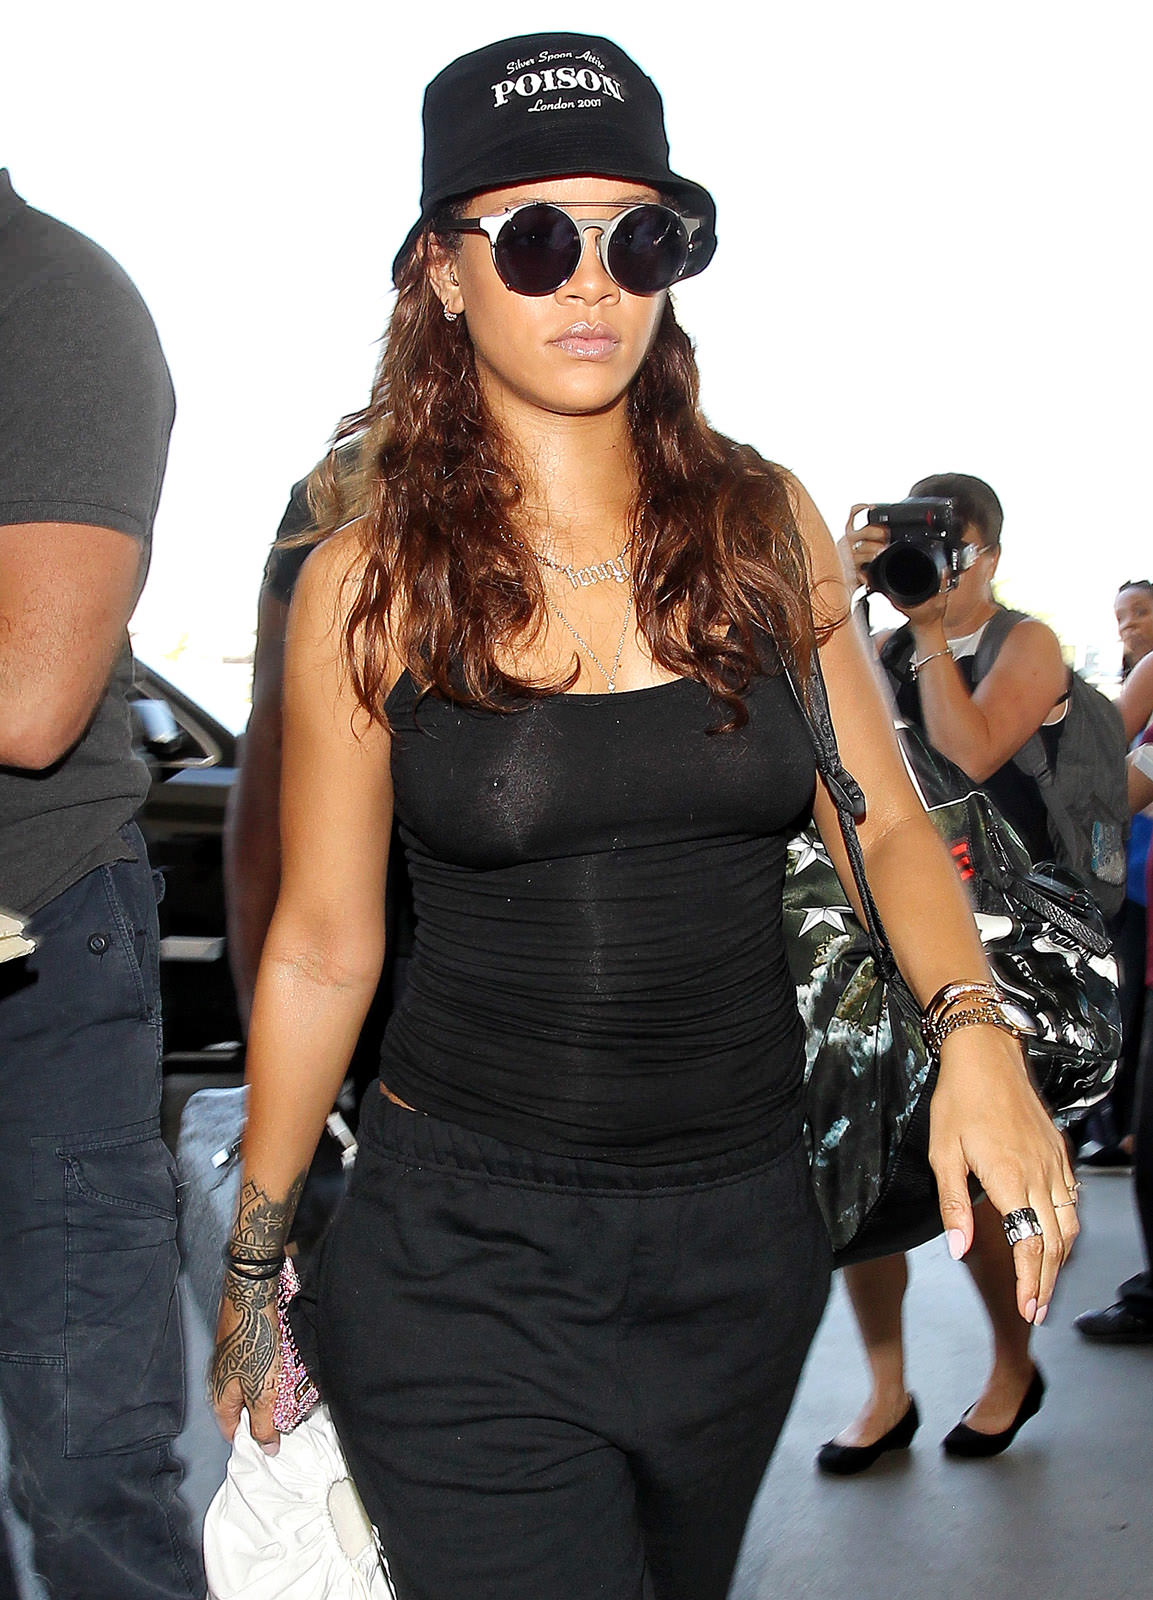 Robyn Rihanna Fenty Photo Gallery